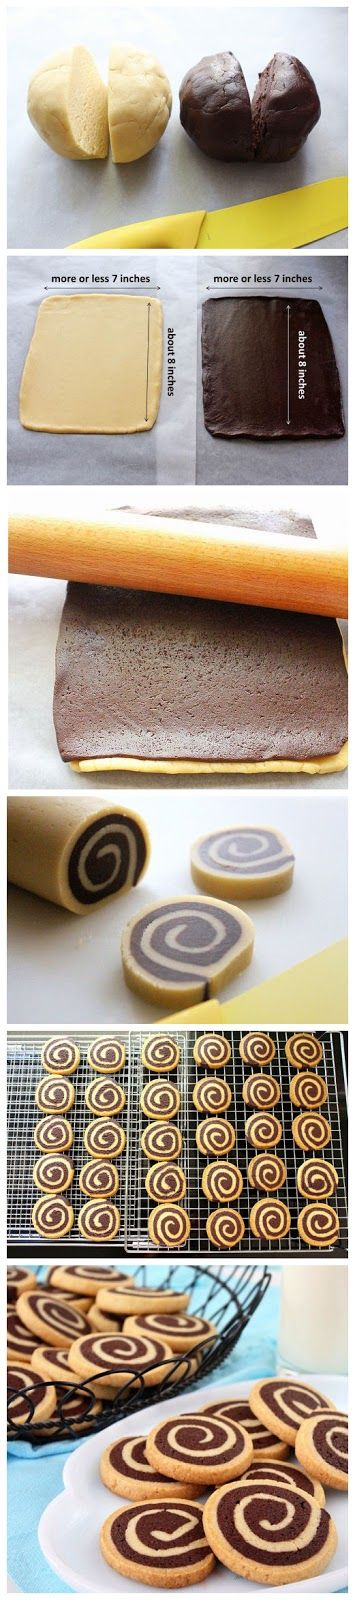 Chocolate Pinwheel Cookies-Ingredients